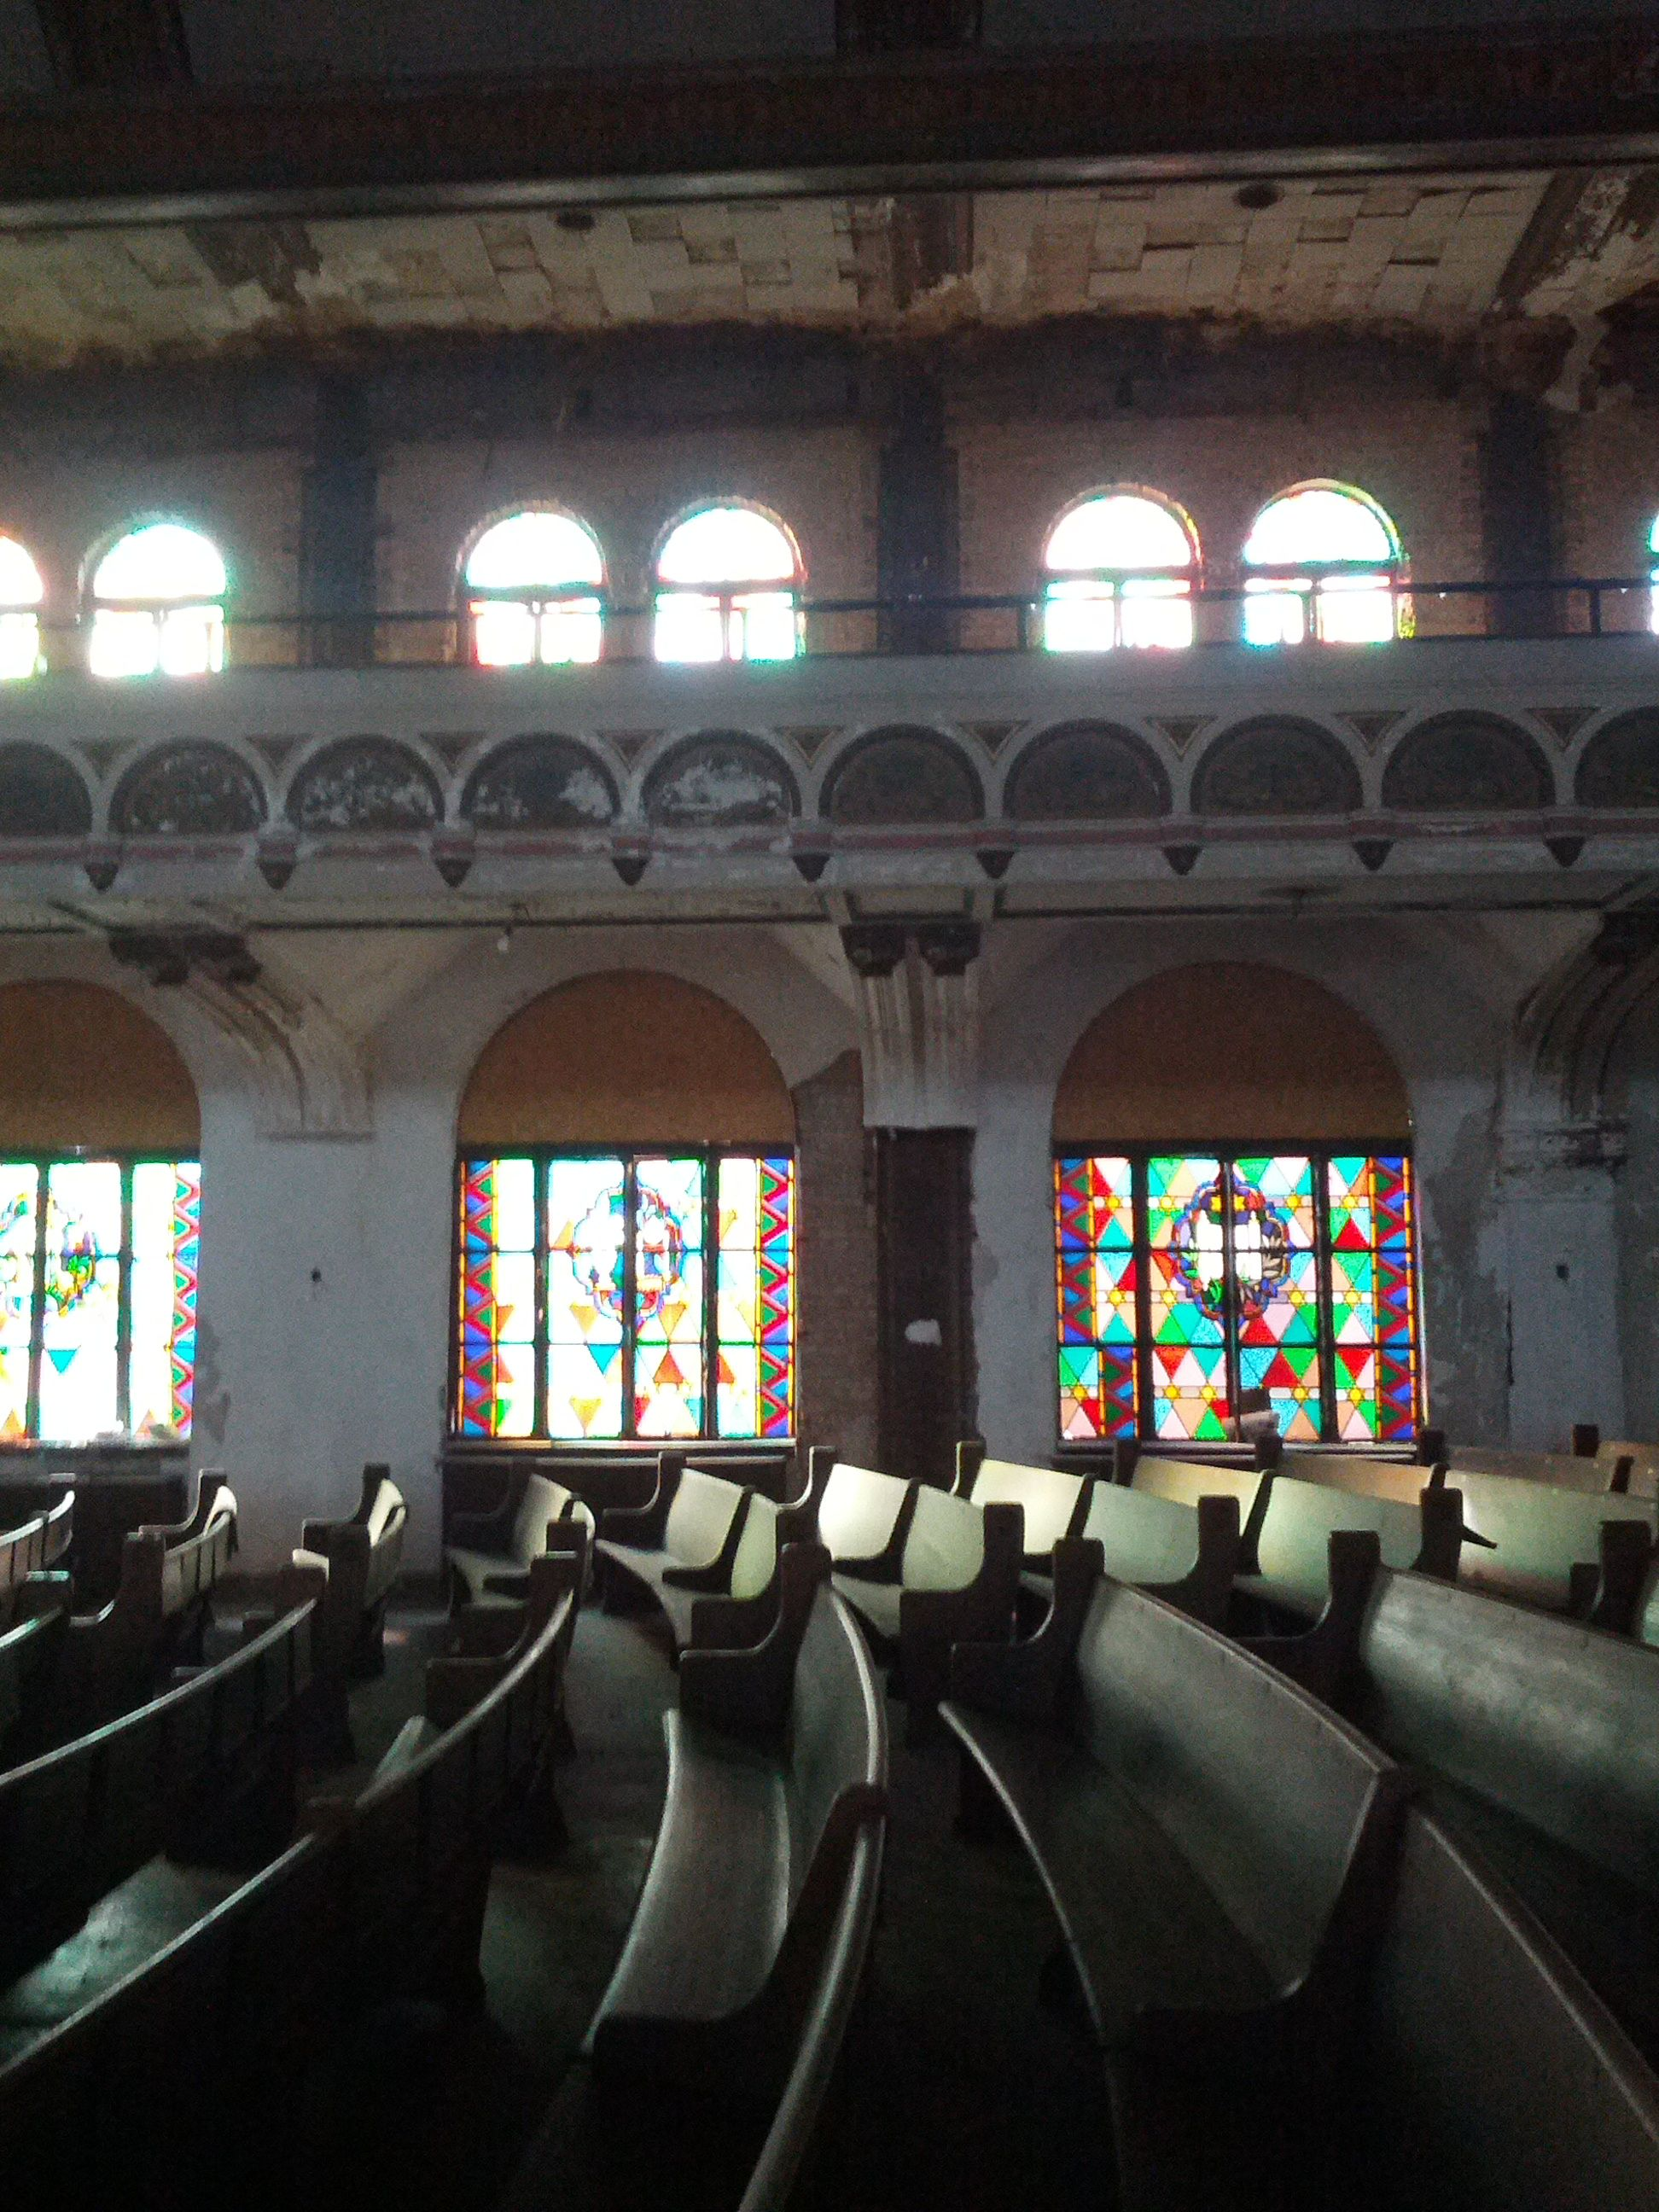 Morning light coming through the broken stained glass at Agudas Achim http://www.openhousechicago.org/site/171/